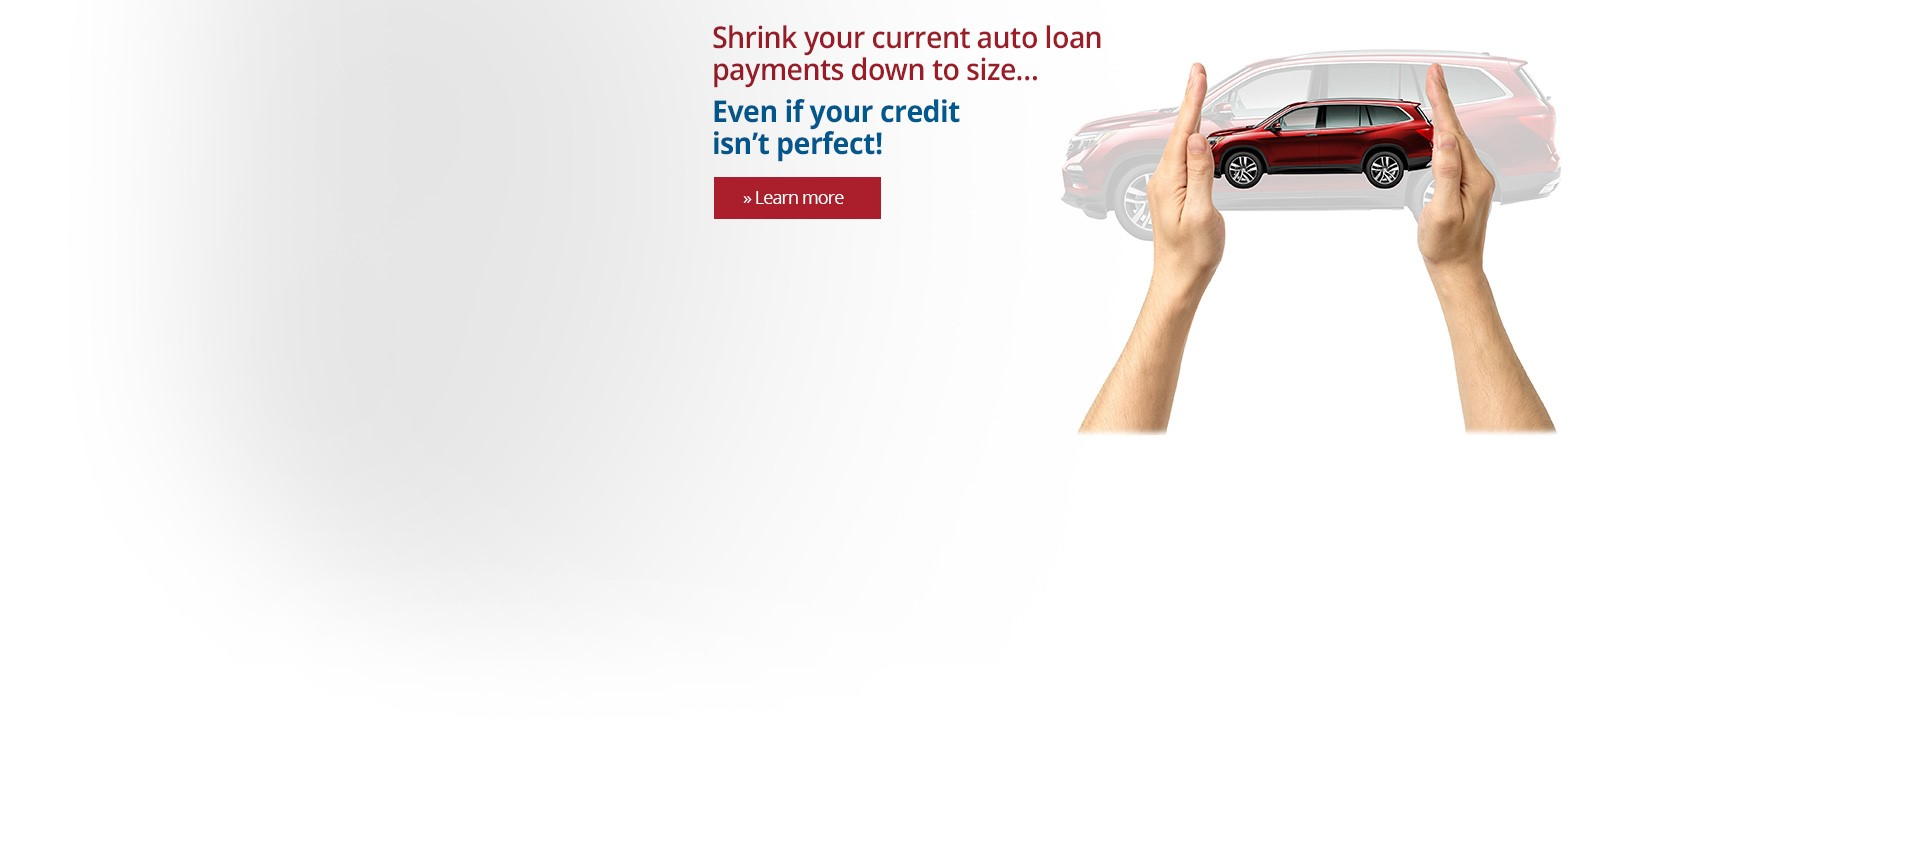 Auto Loans: Shrink Your Payment Feb 2018